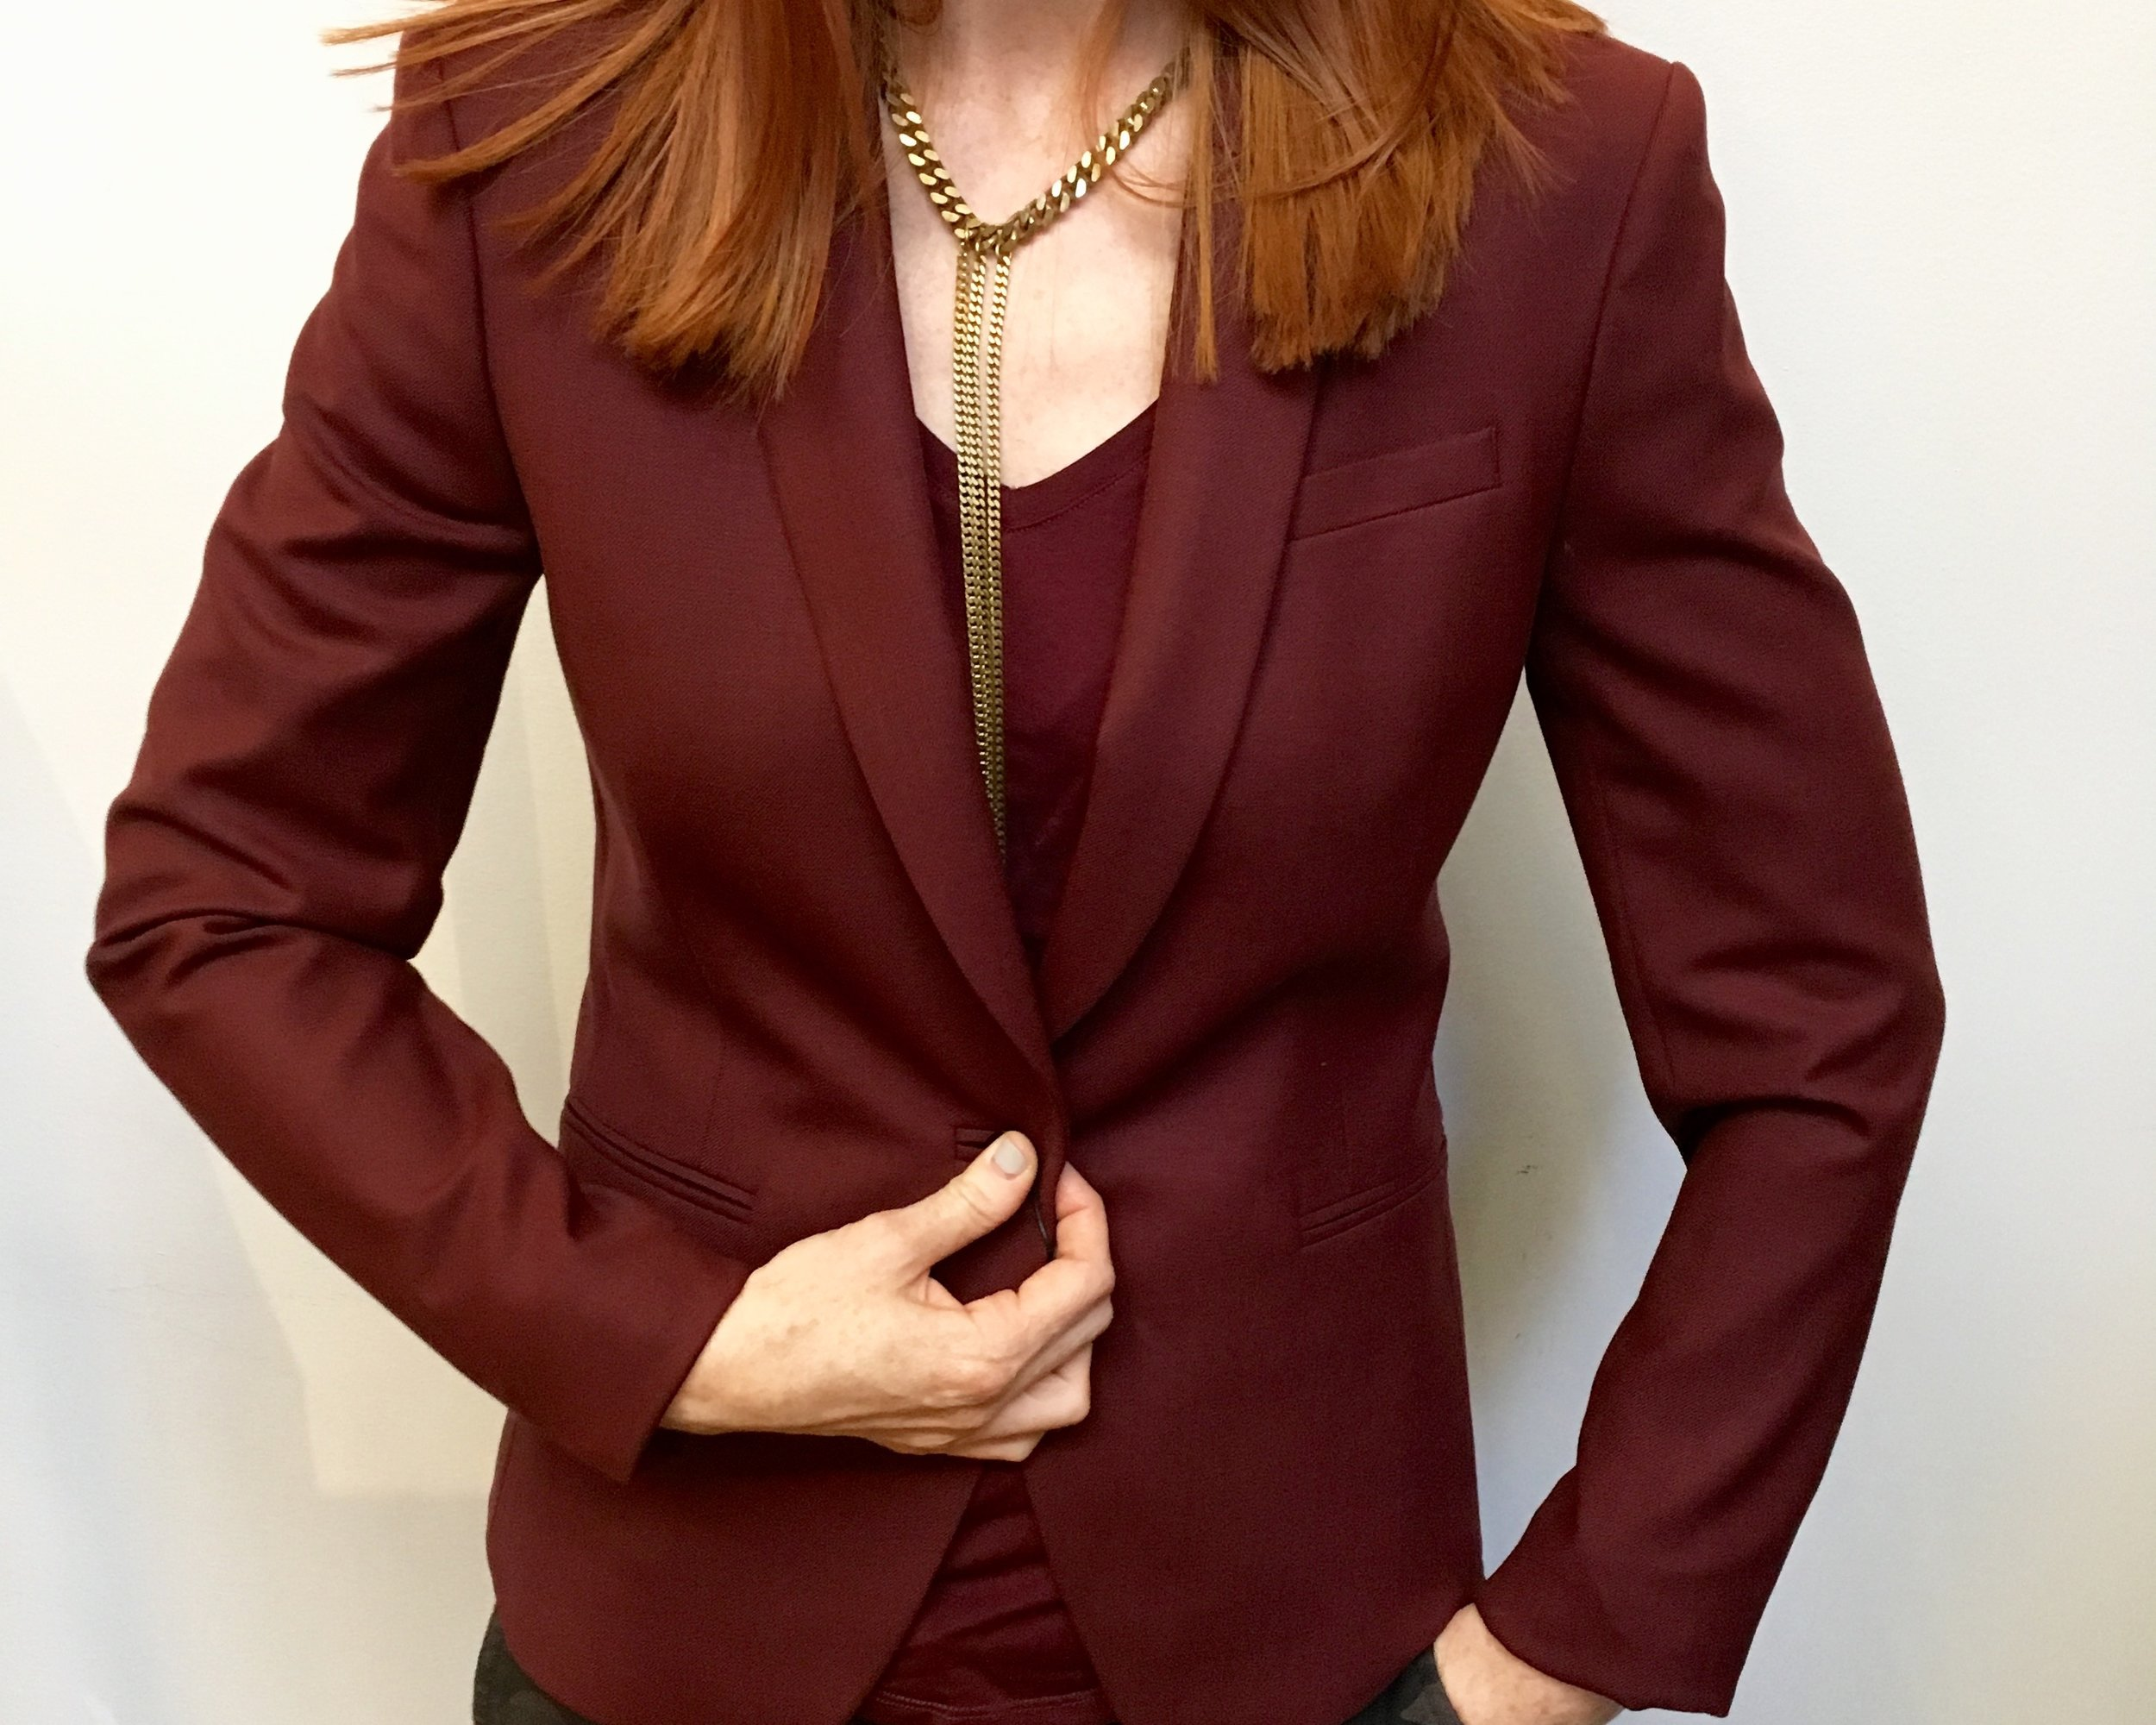 Tiger of Sweden Burgundy Blazer WAS $479  NOW $335 Paige V-neck Tee WAS $125  NOW $87